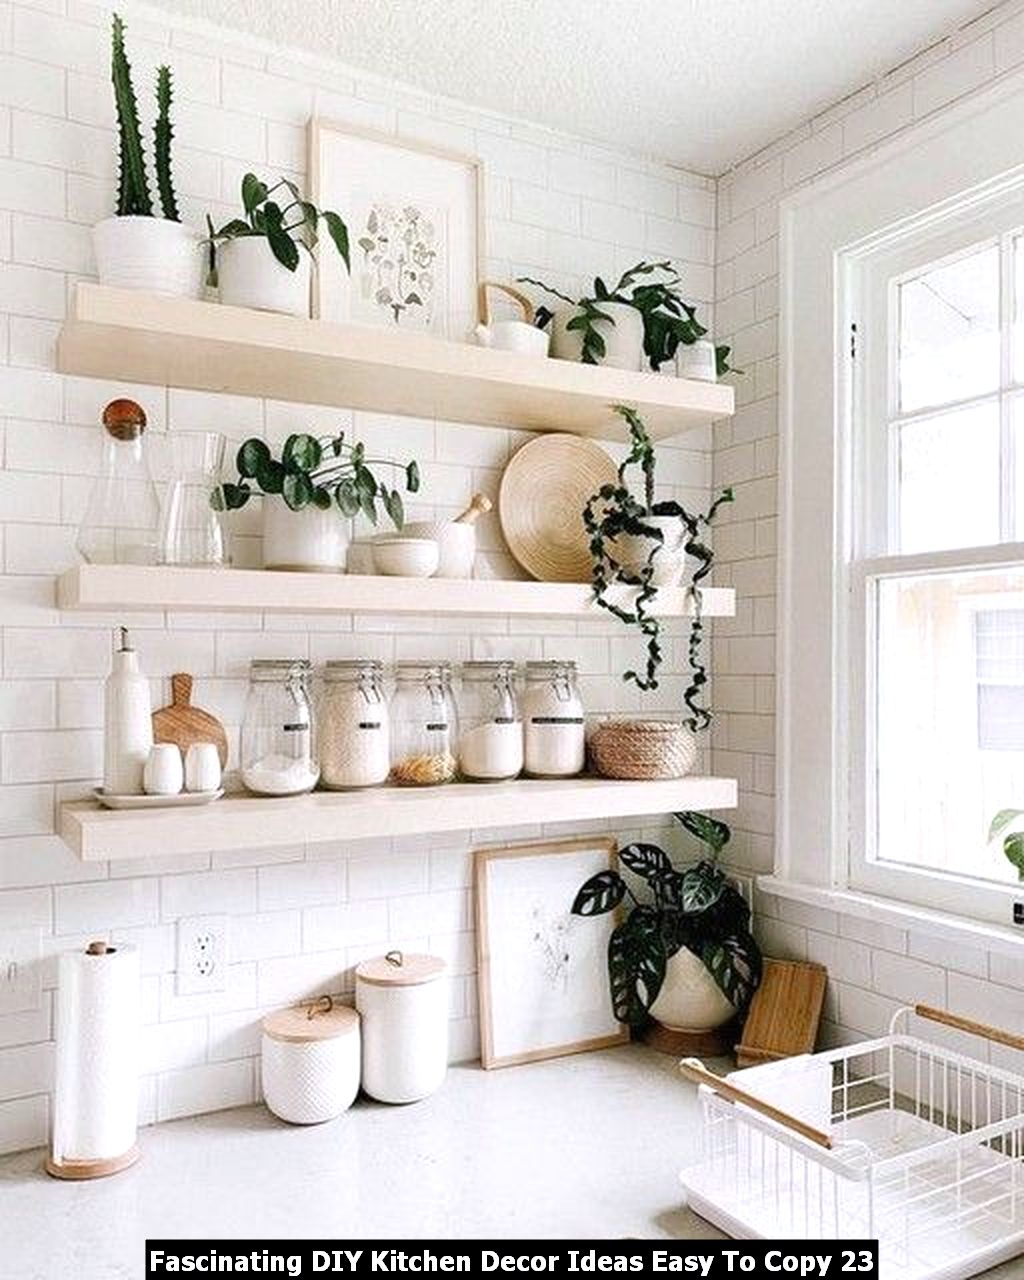 Fascinating DIY Kitchen Decor Ideas Easy To Copy 23